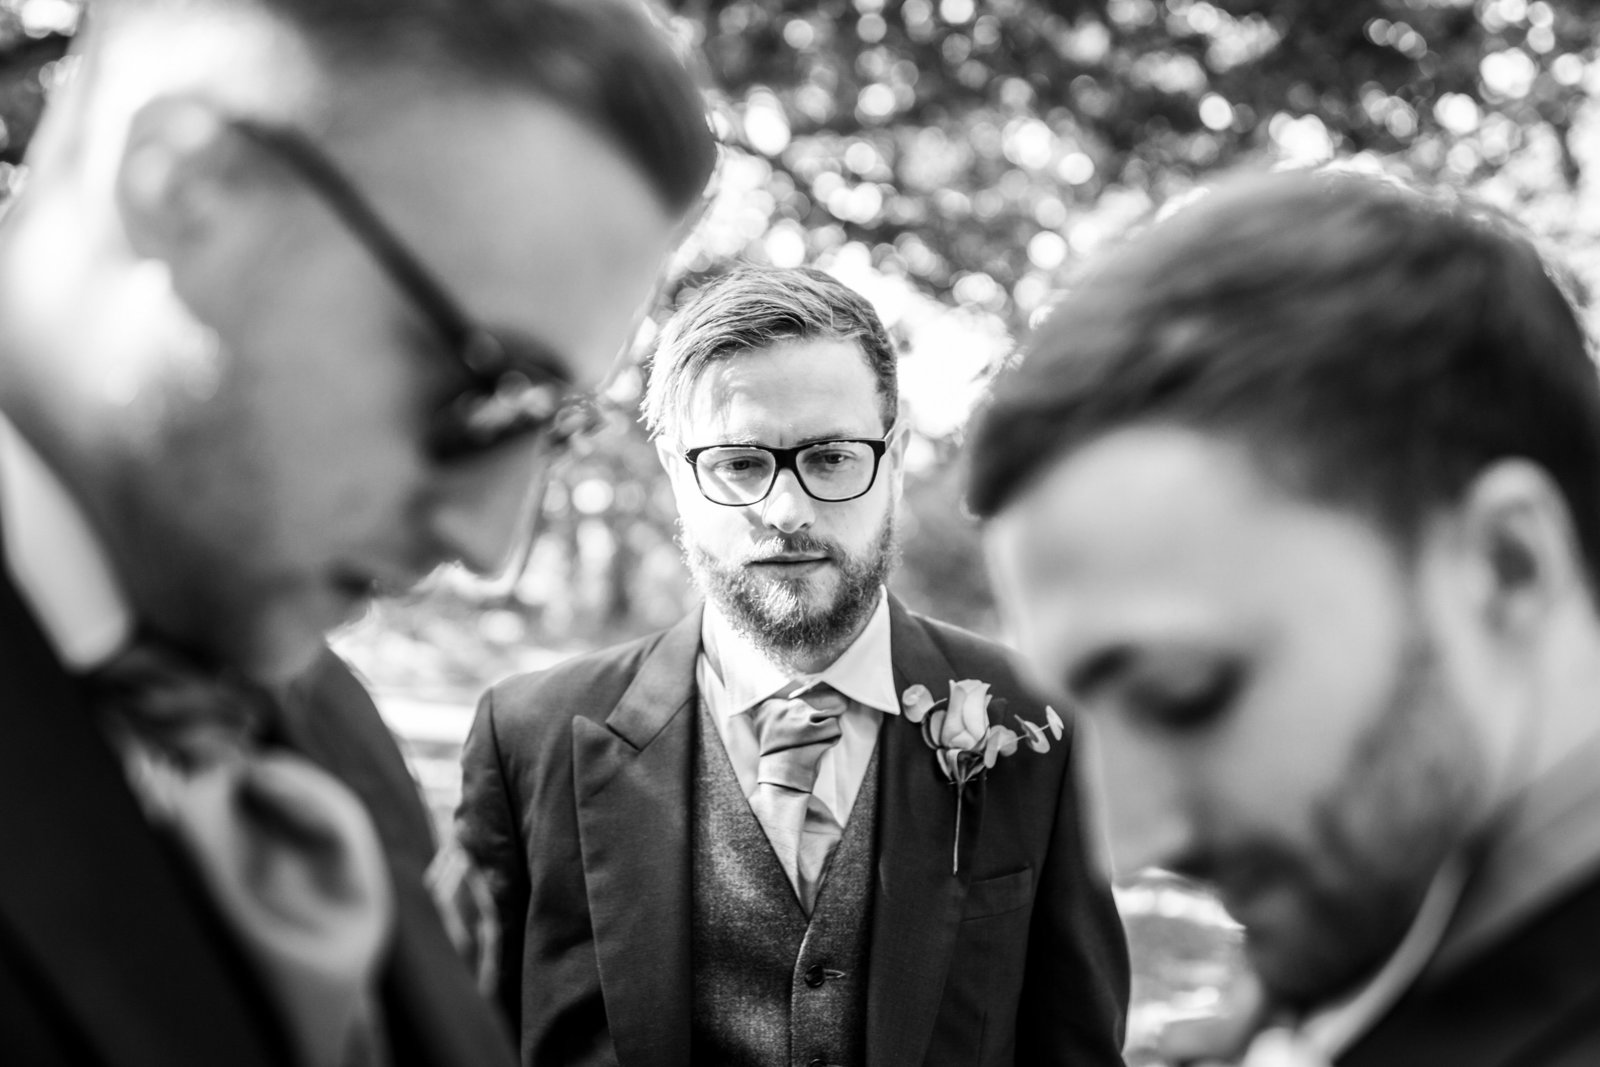 A groomsman helps the groom put on his buttonhole whilst another groomsman watches outside a church in Norfolk.